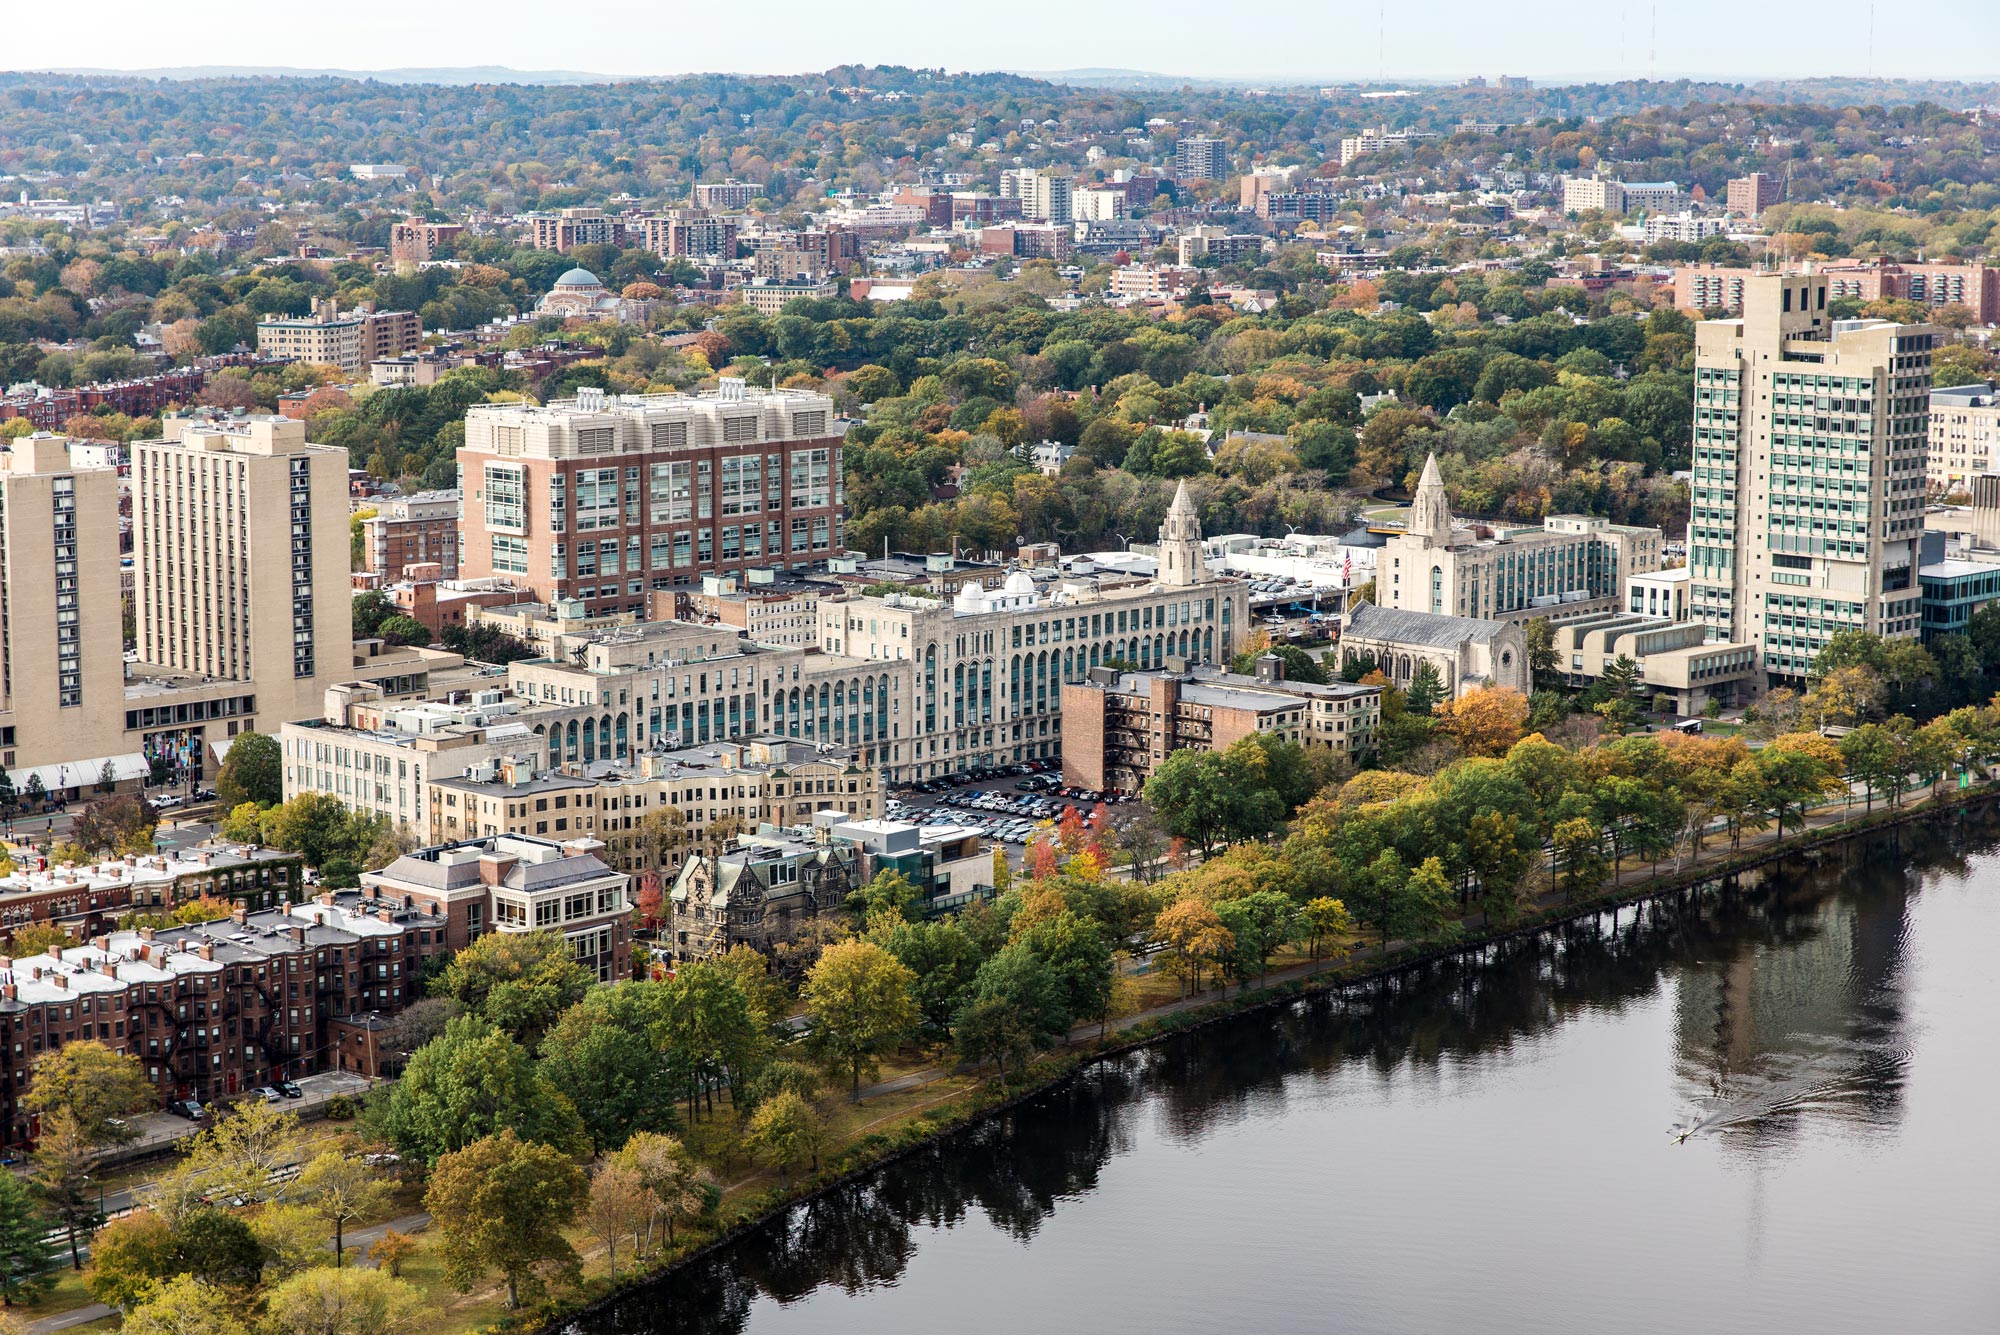 An aerial photo of the Charles River Campus.